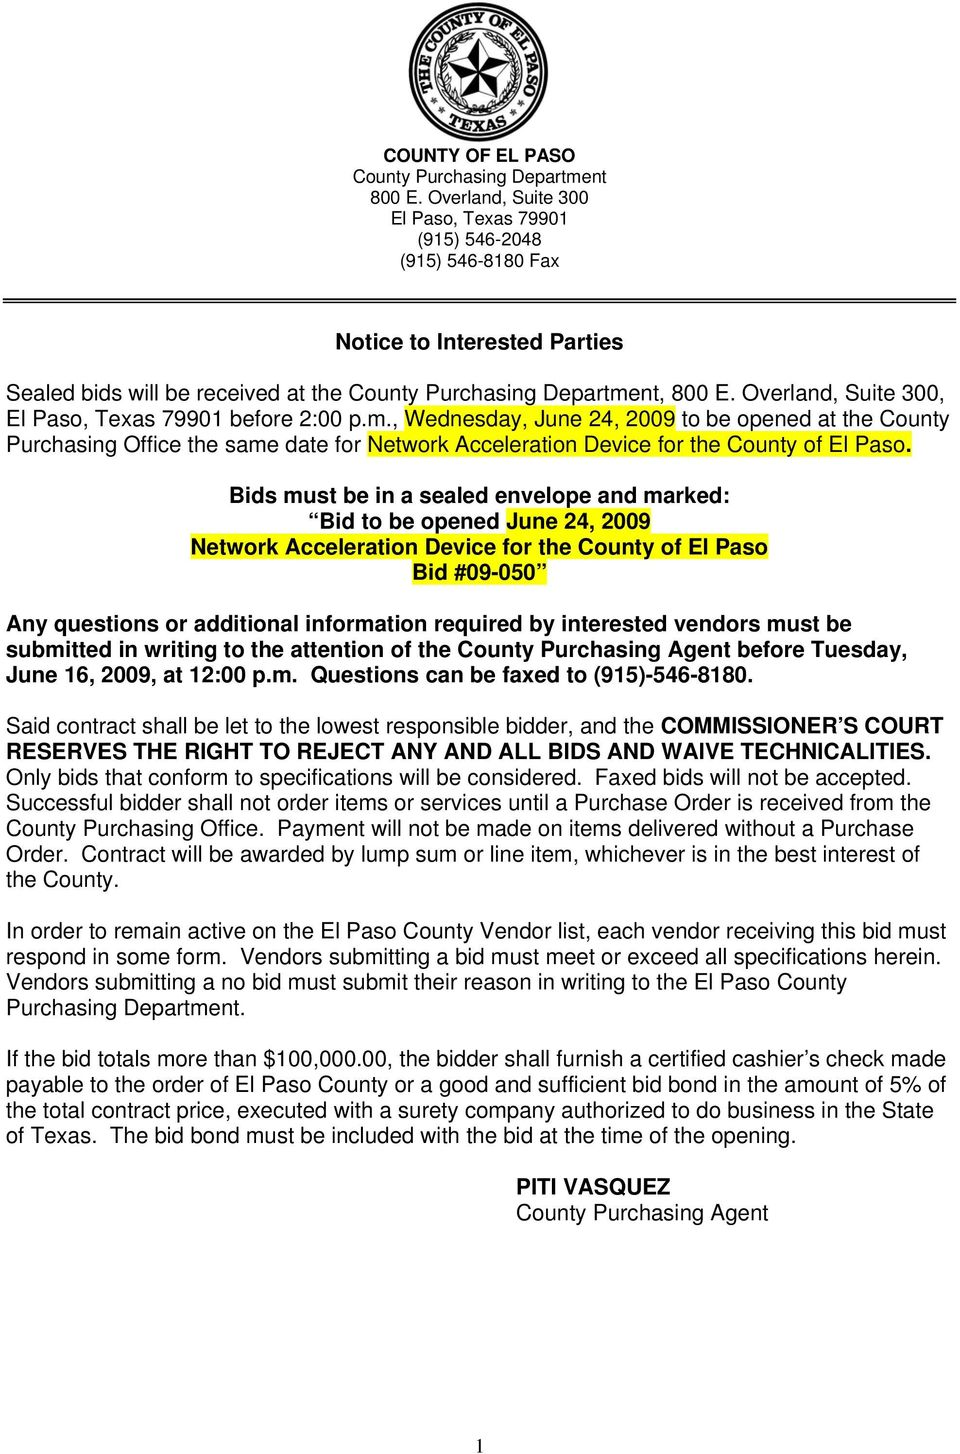 Notice to Interested Parties - PDF